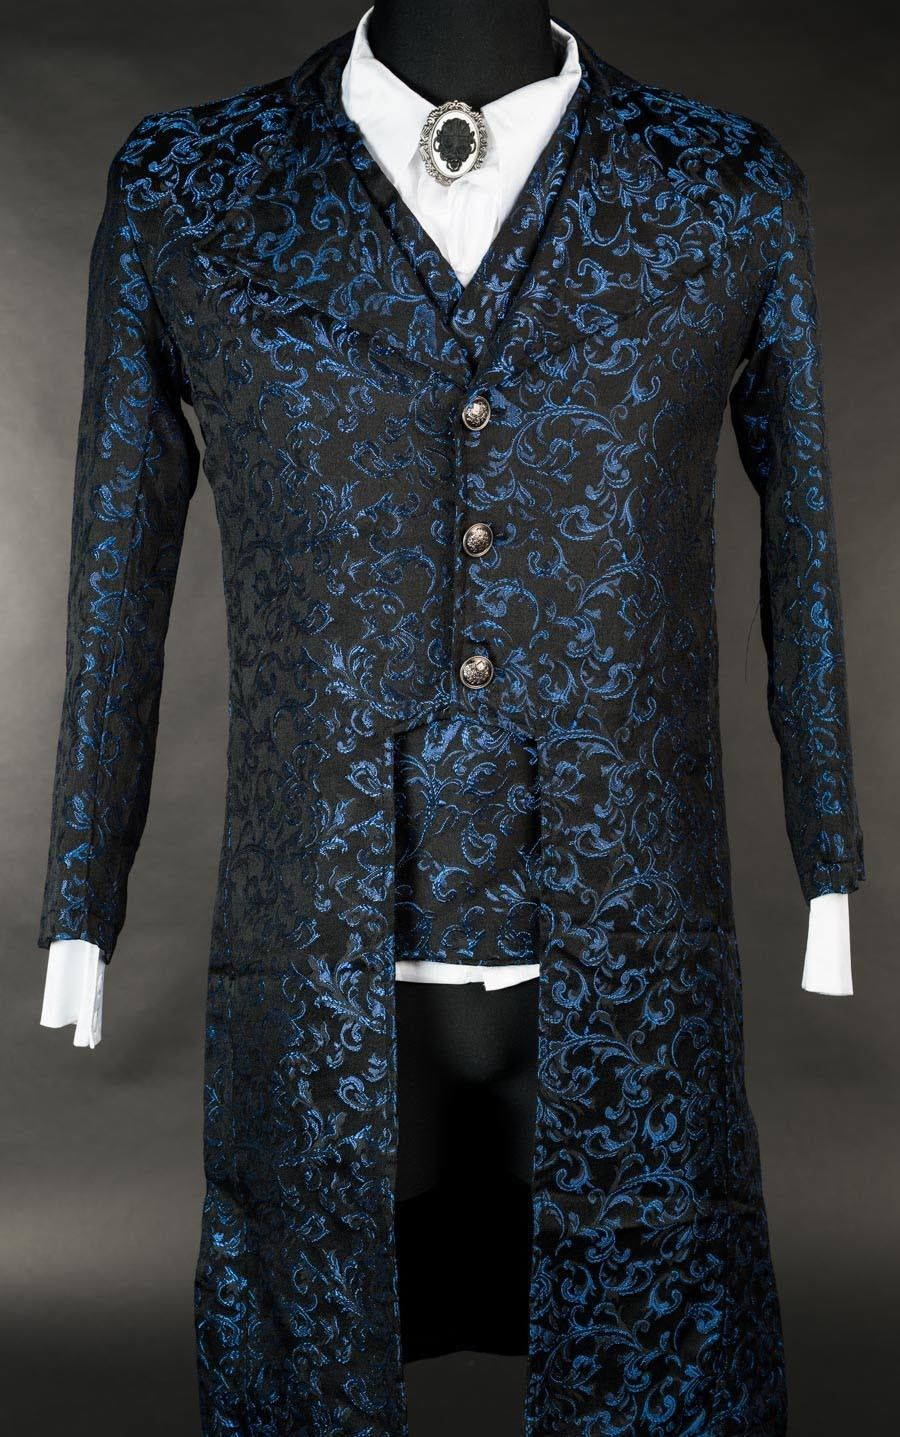 NWT Men's Black Blue Brocade Victorian Goth Vampire Tailcoat Suit Jacket